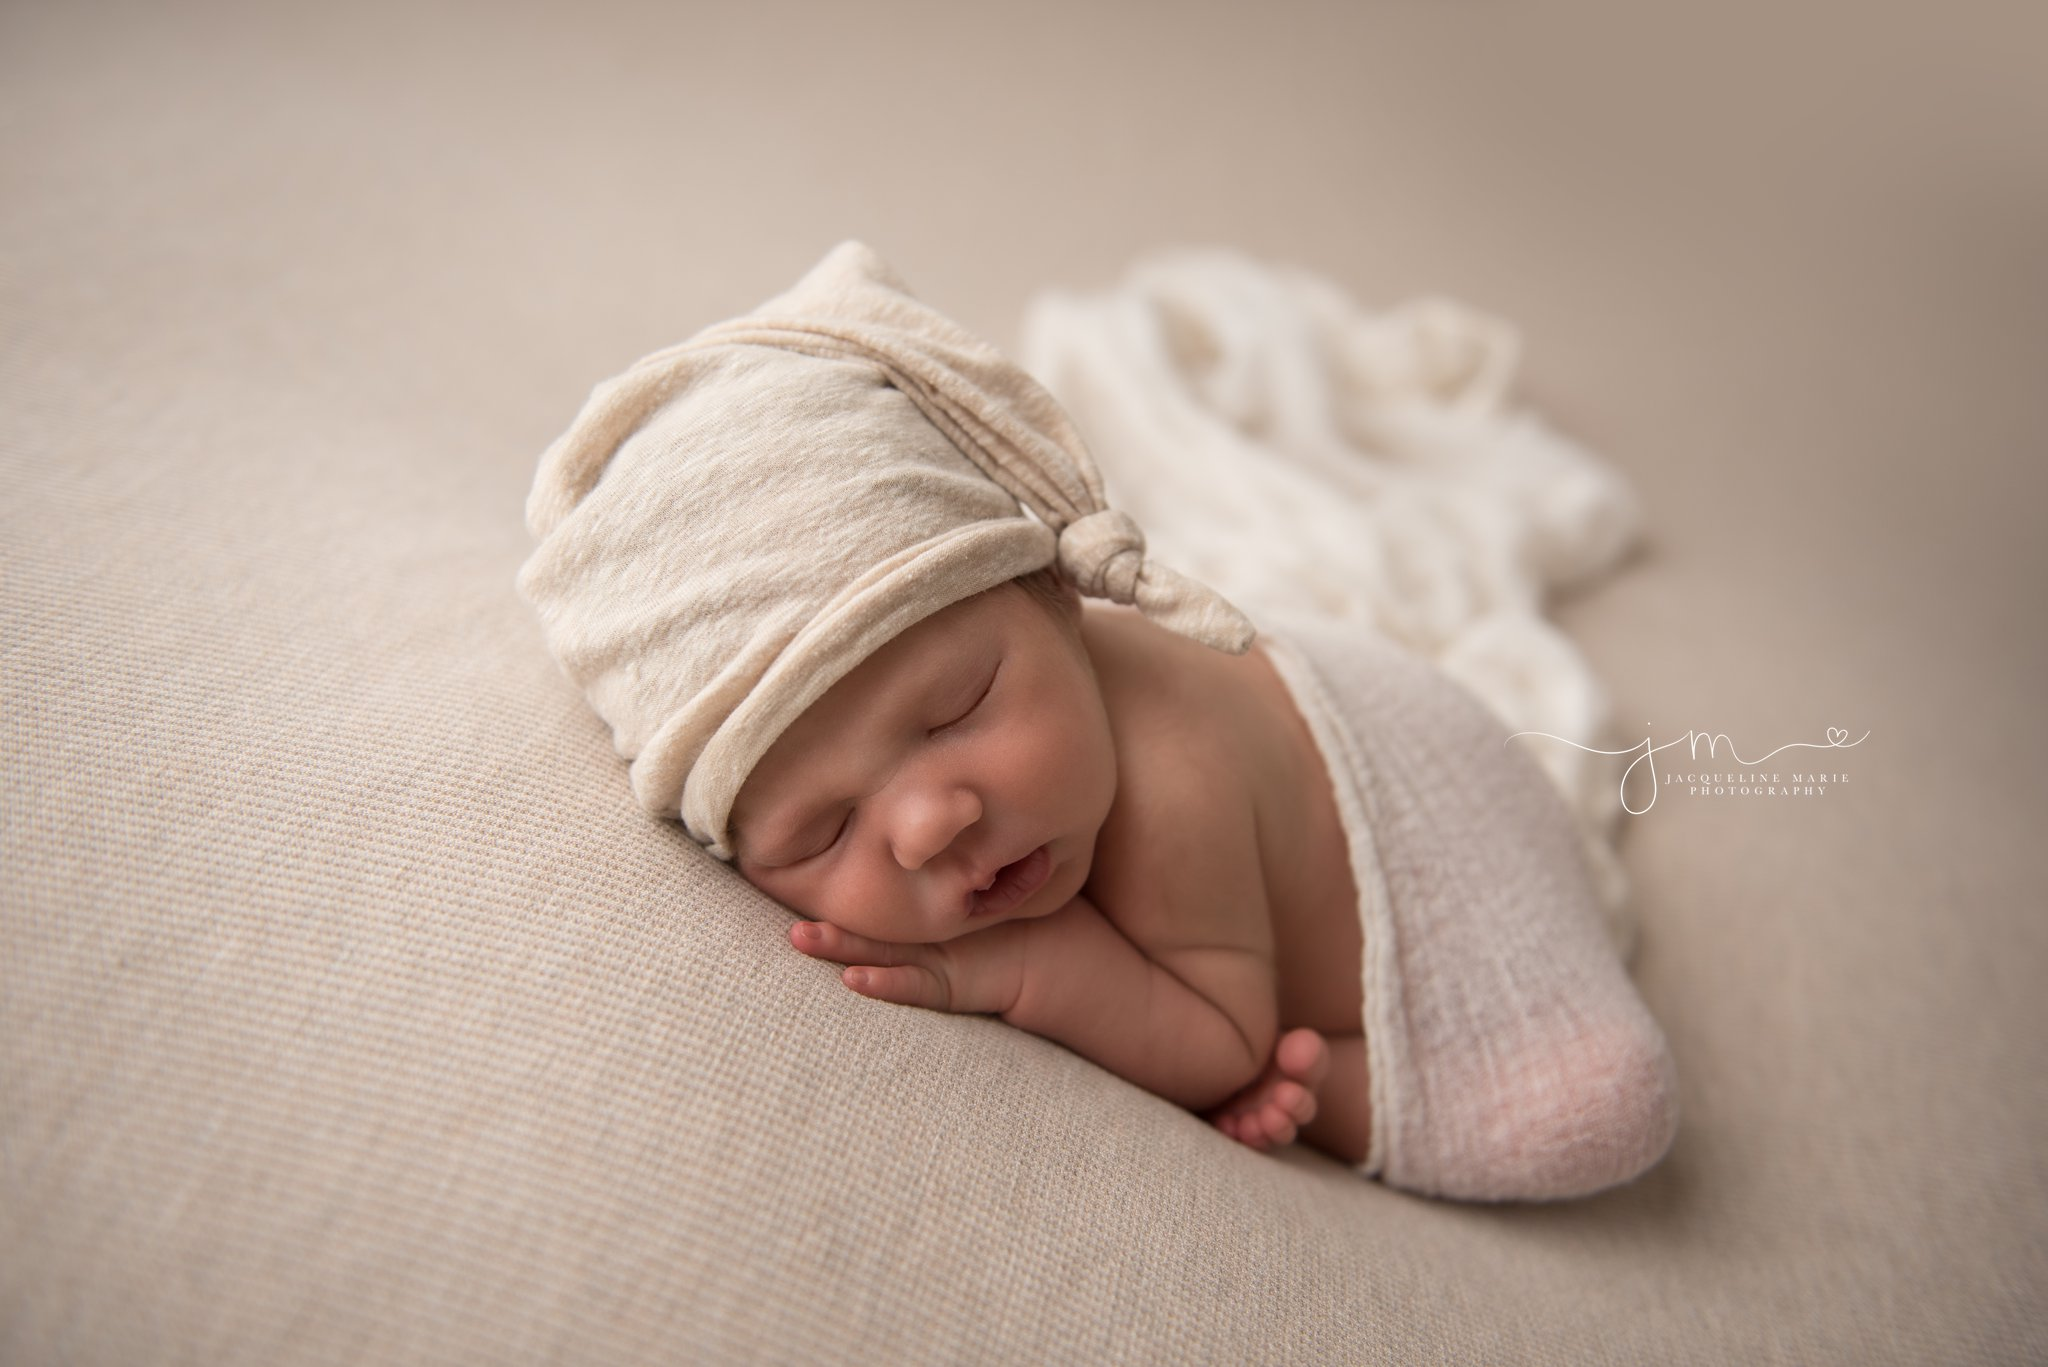 columbus ohio newborn baby boy wears cream hat and is swaddled in cream wrap at jacqueline marie photography studio